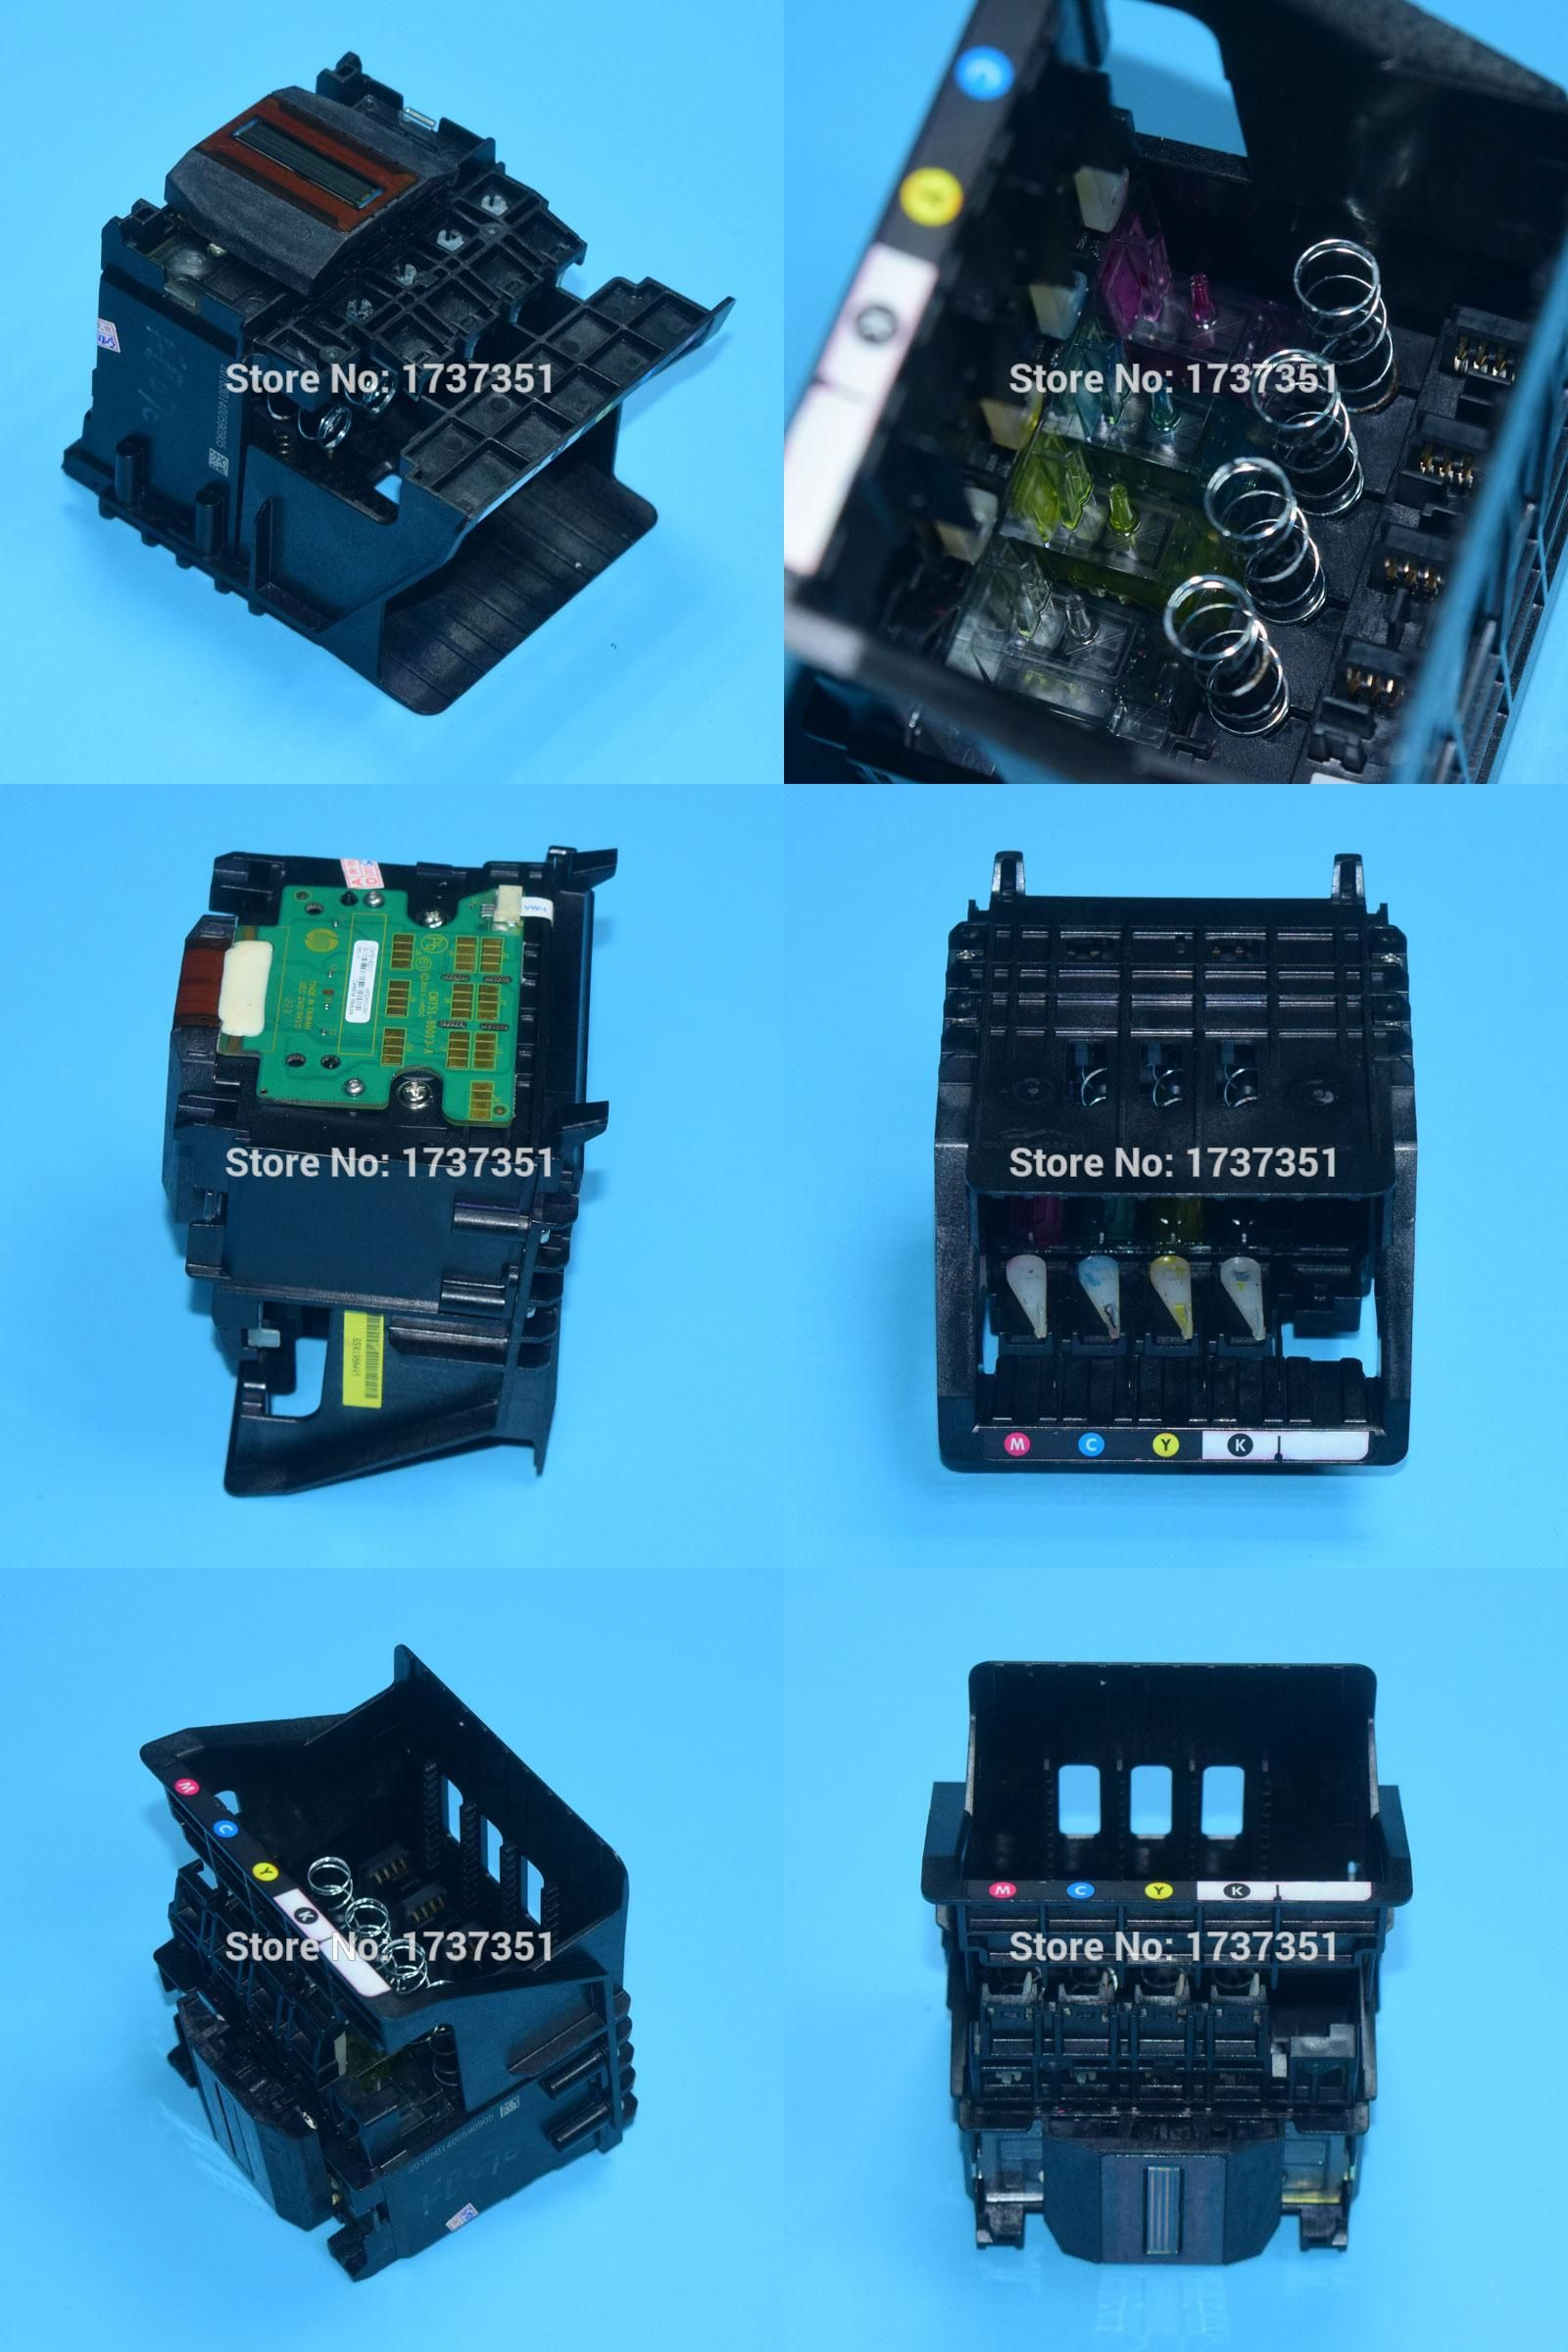 Visit to Buy] HP950 951 Printhead for HP Officejet Pro 8610